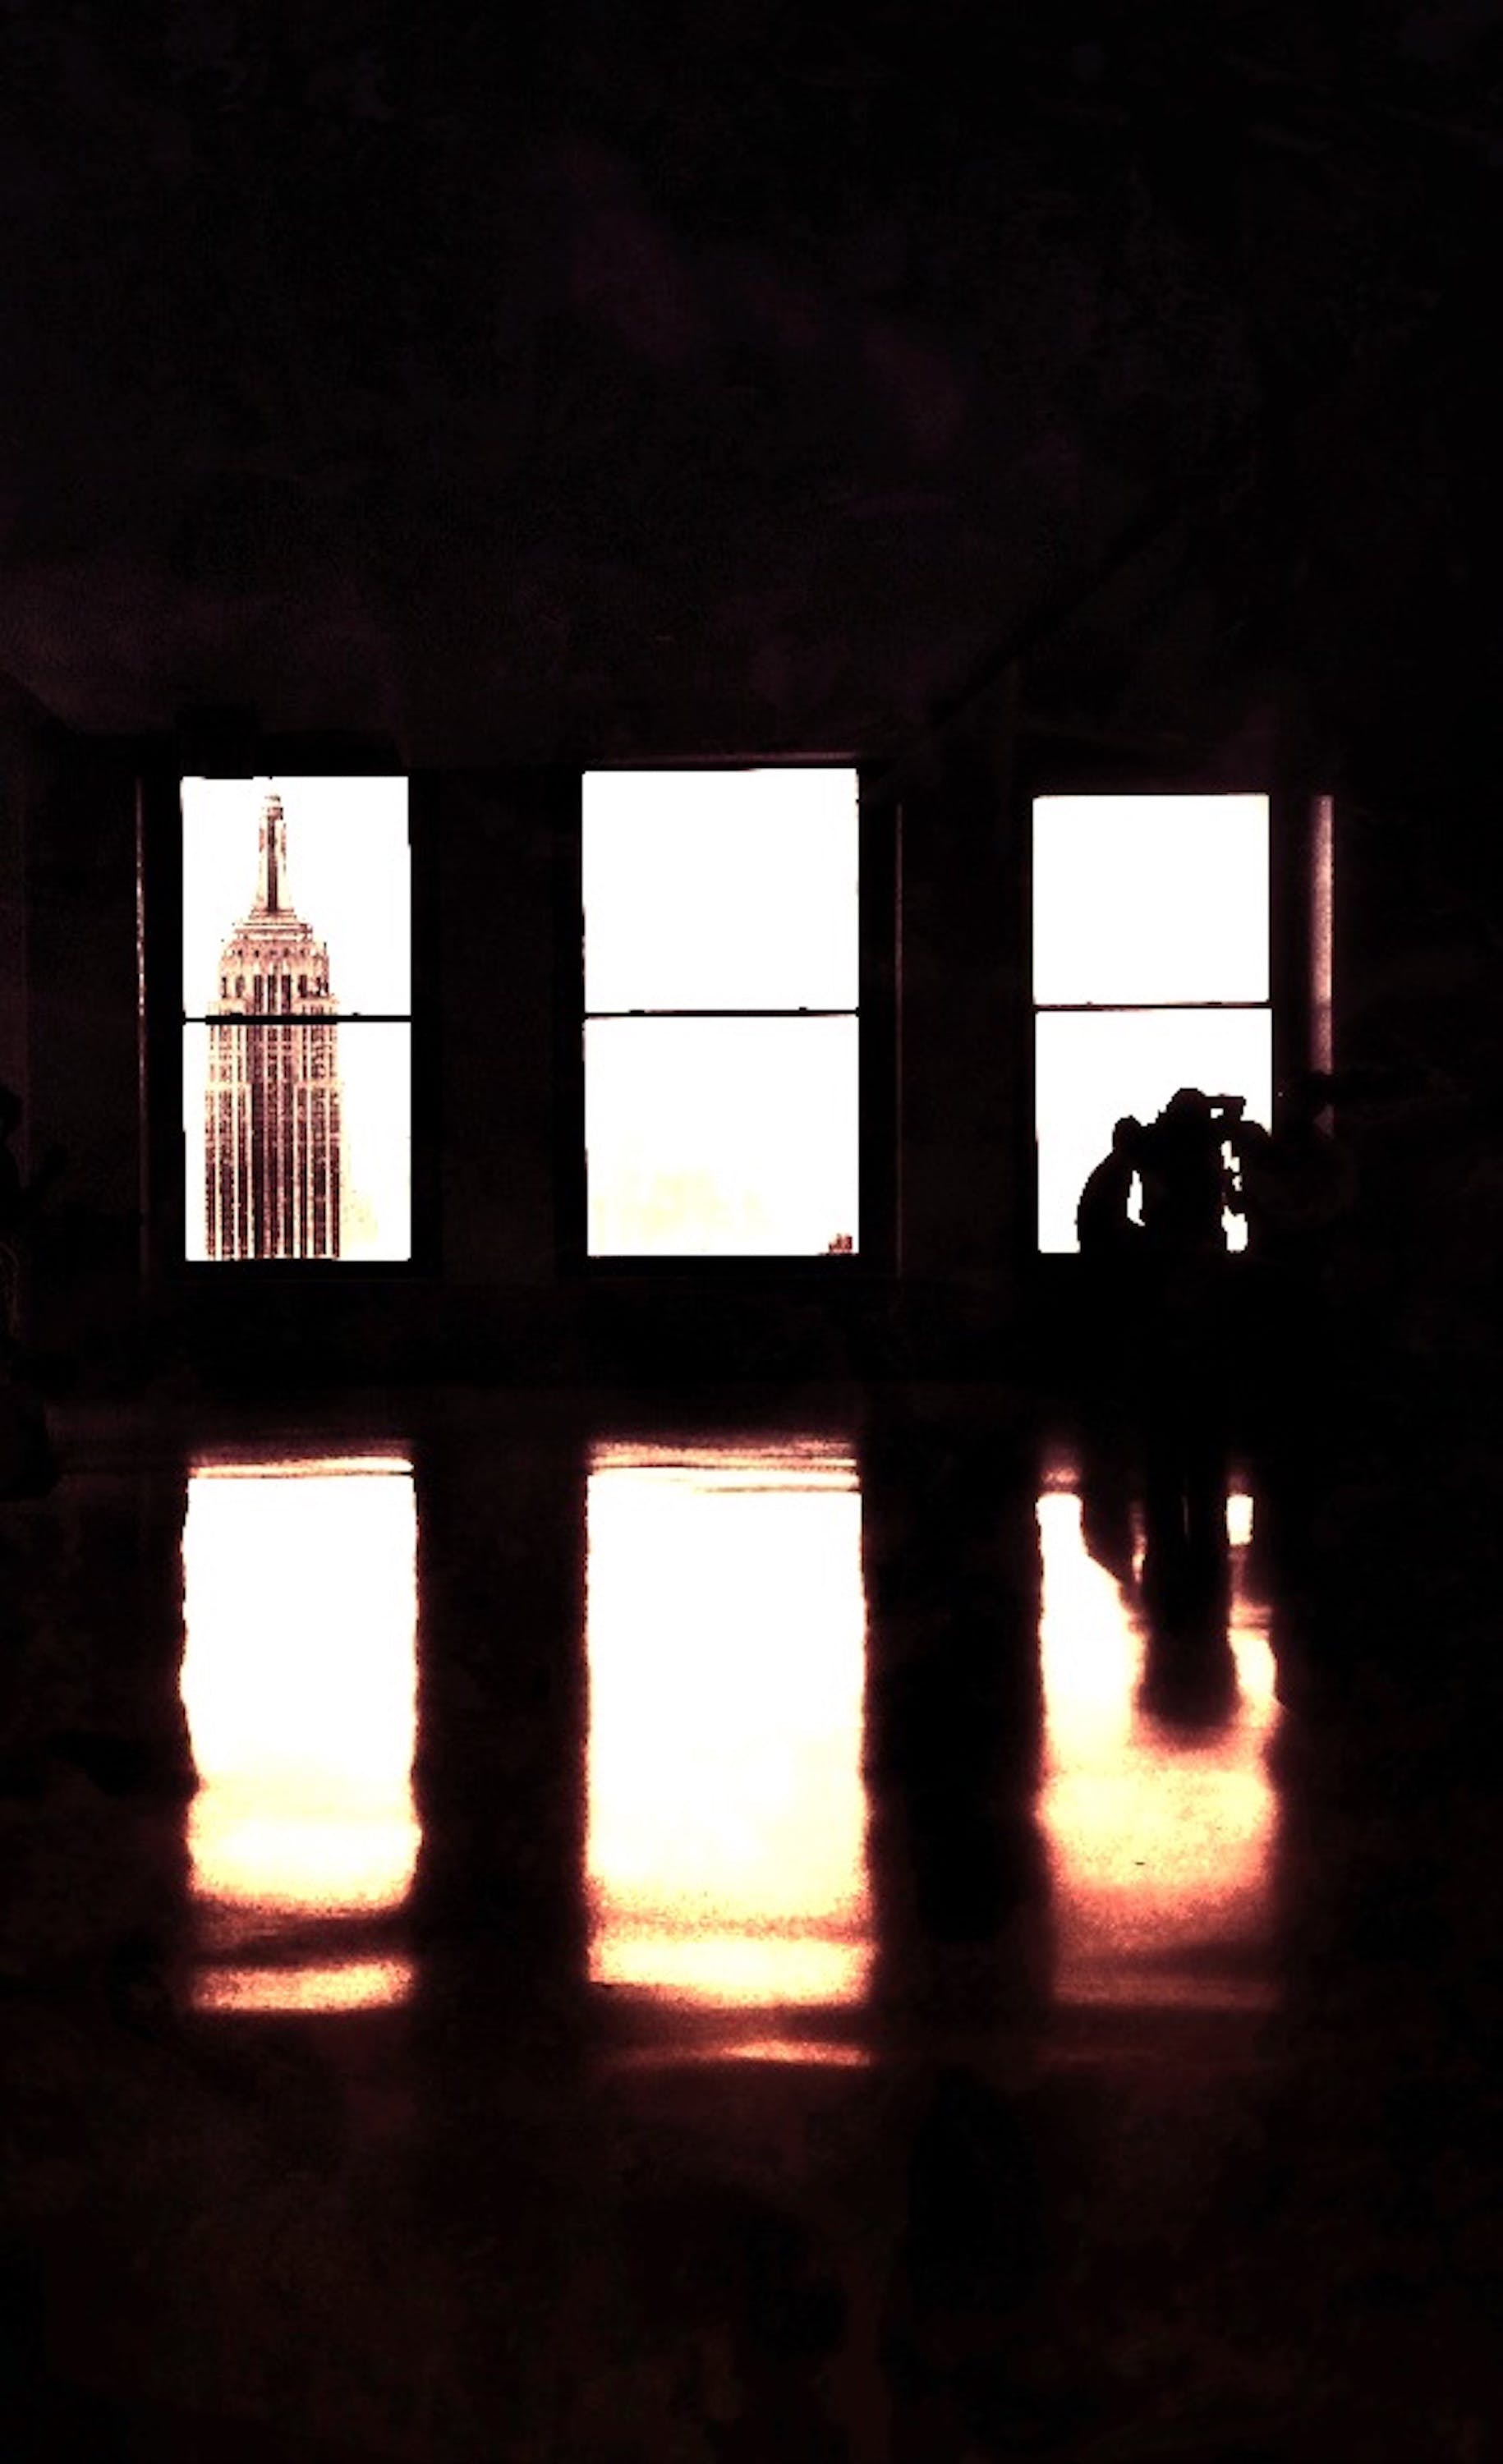 Free stock photo of black and white, empire state building, sepia, windows